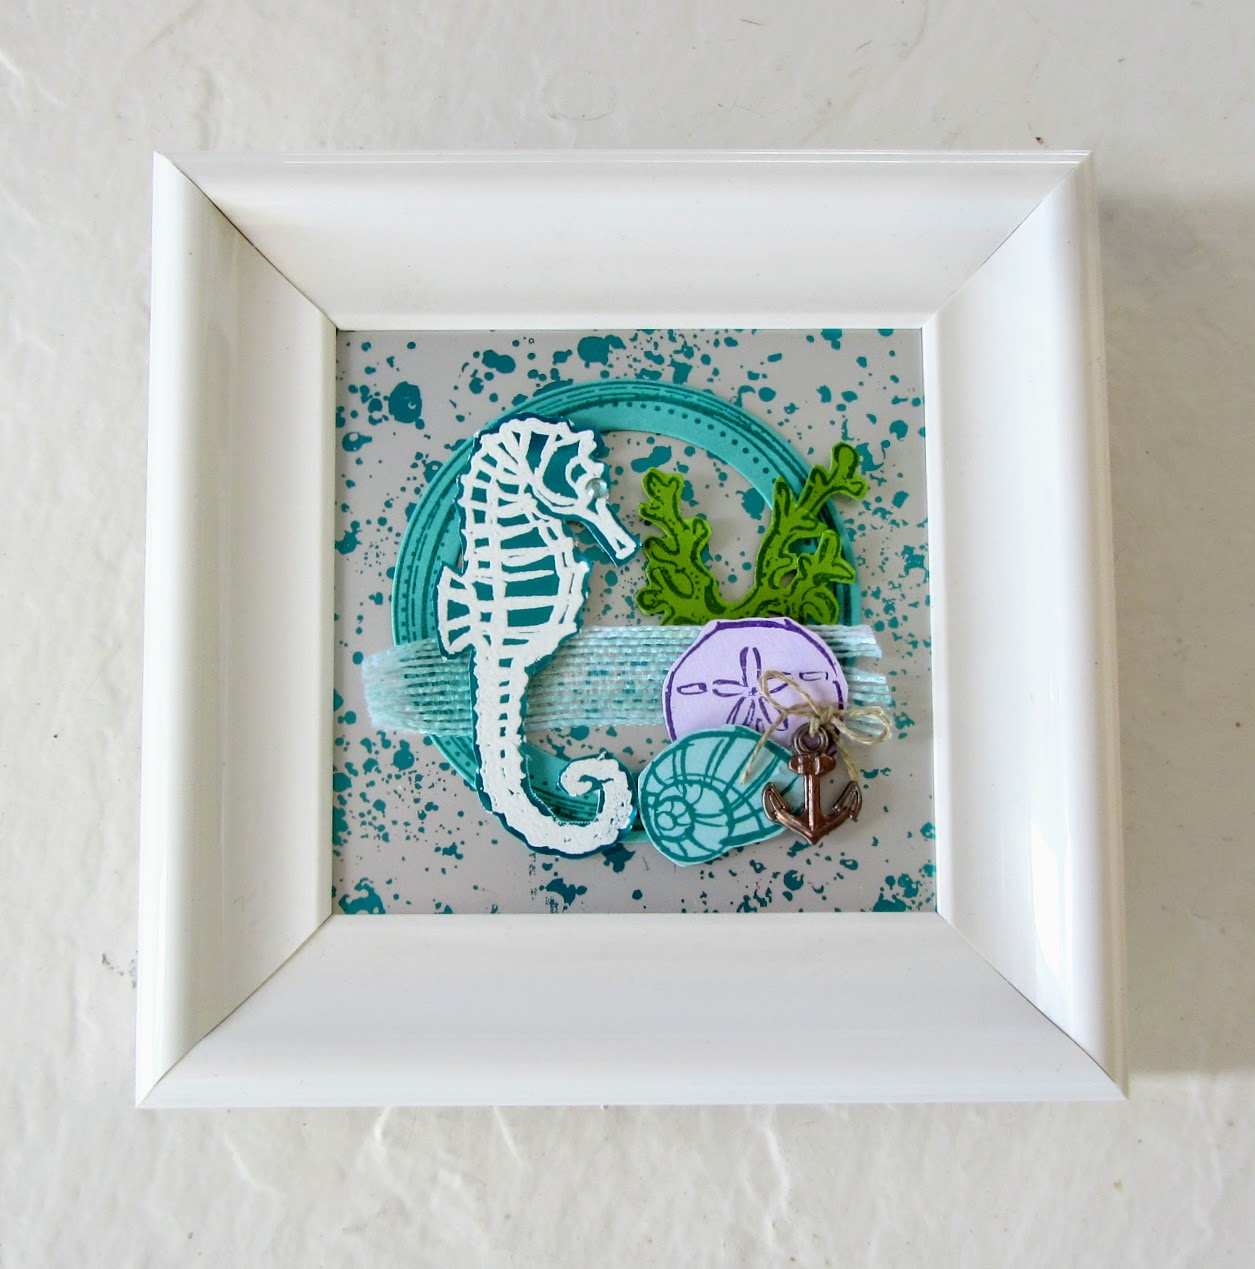 Stampin-Up-Seaside-Notions-Swirly-Frames-Mercury-Acetate-Pals-Blog-Hop-Layer-it-Up-home-decor-framed-art-project-Debra-Simonis-Stampinup